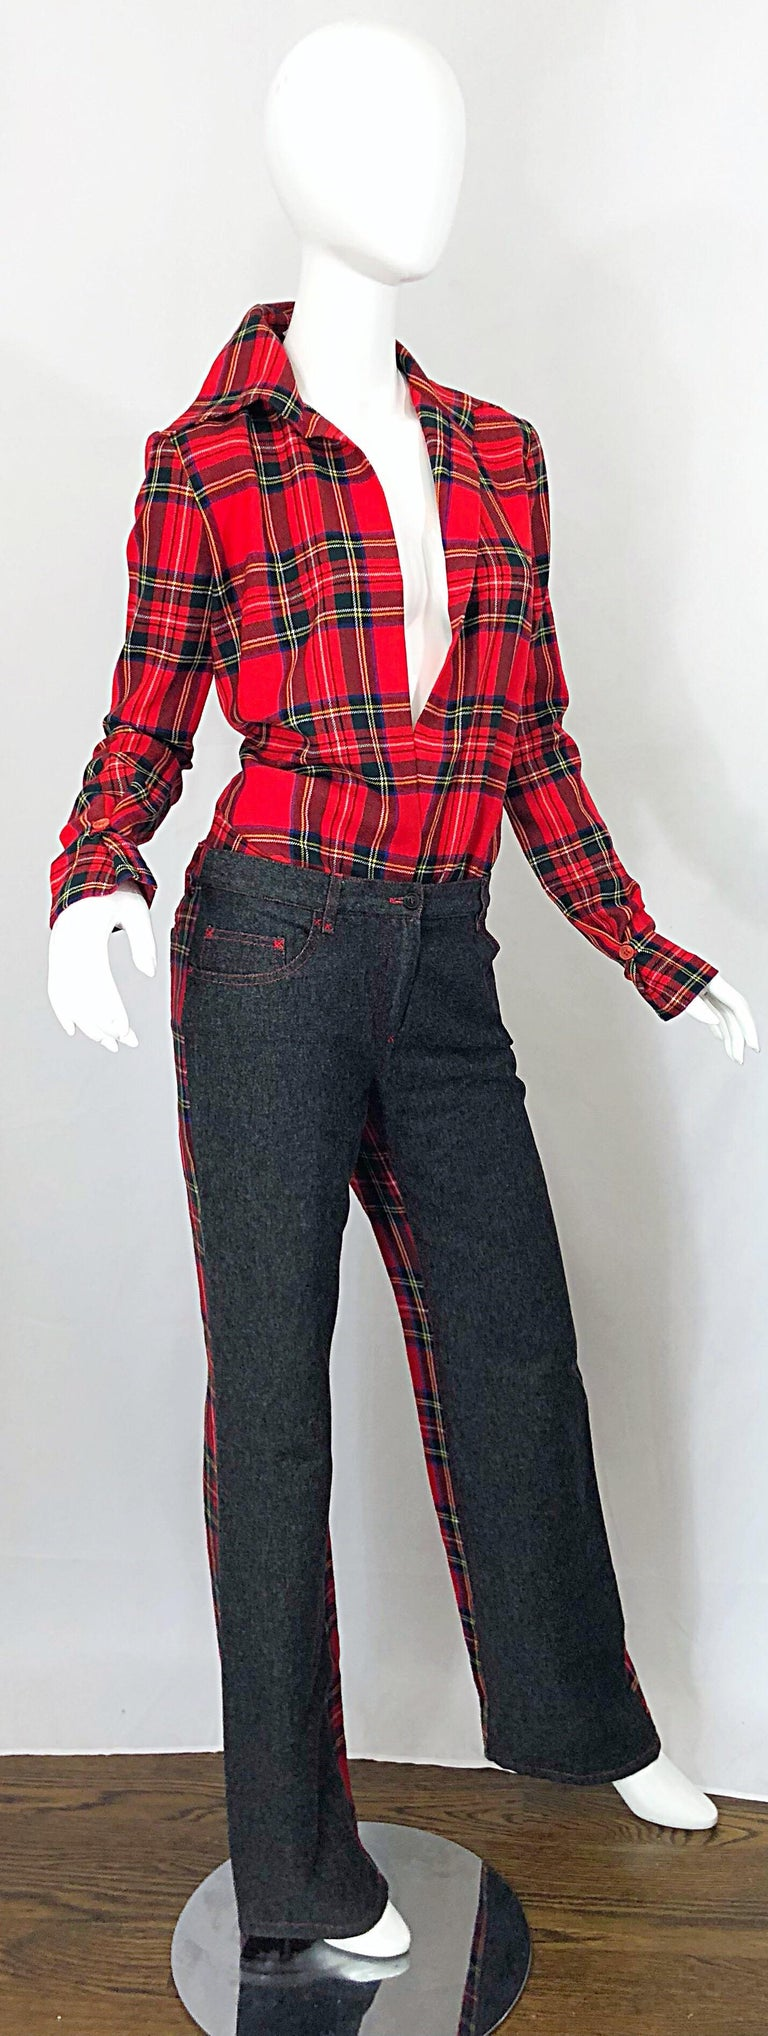 Rare 1990s Dolce & Gabbana Red Tartan Plaid Wool + Denim Flared Jeans and Shirt For Sale 2